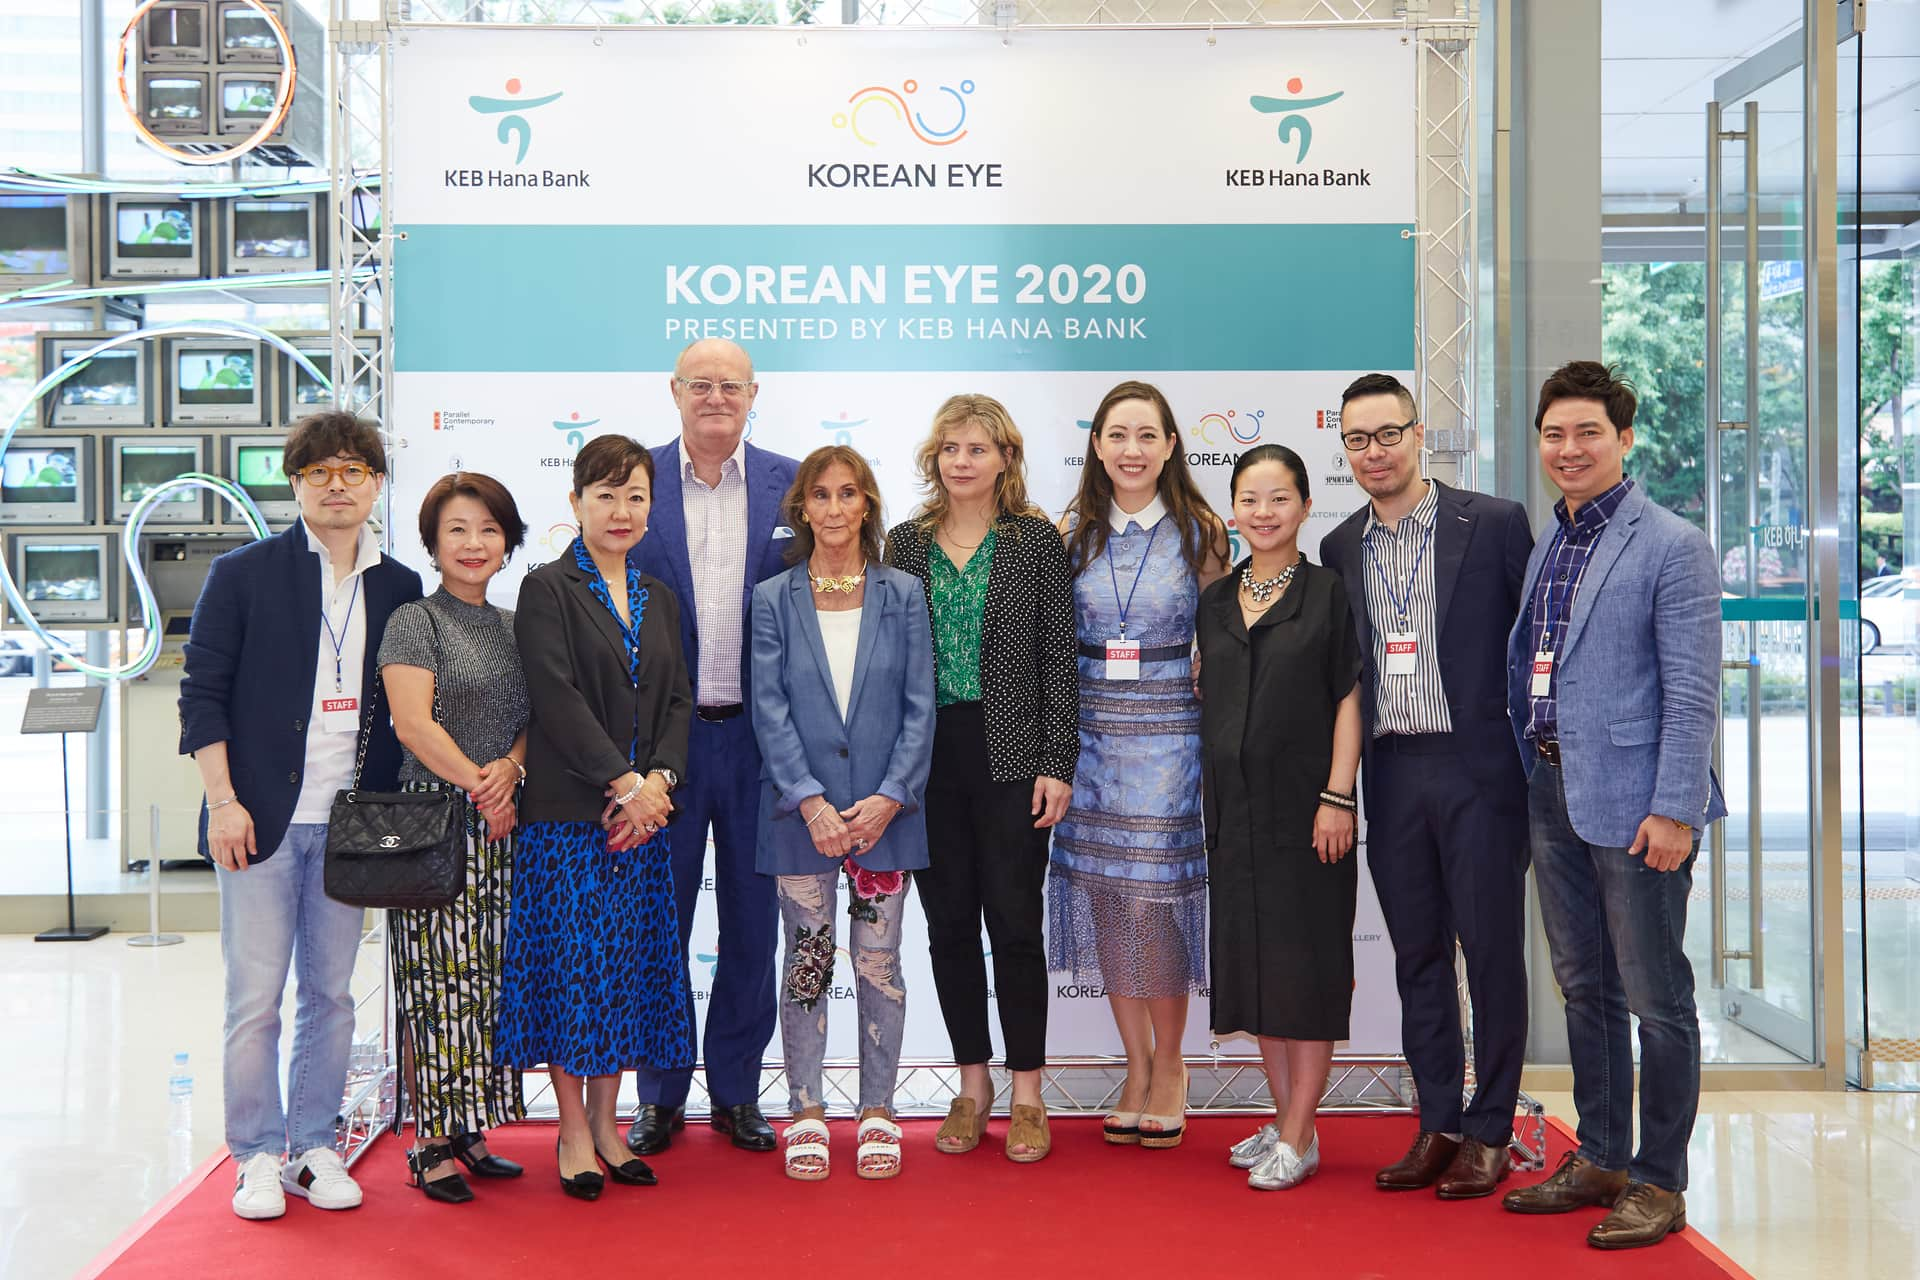 The Korean Eye 2020 team at the launch in Seoul